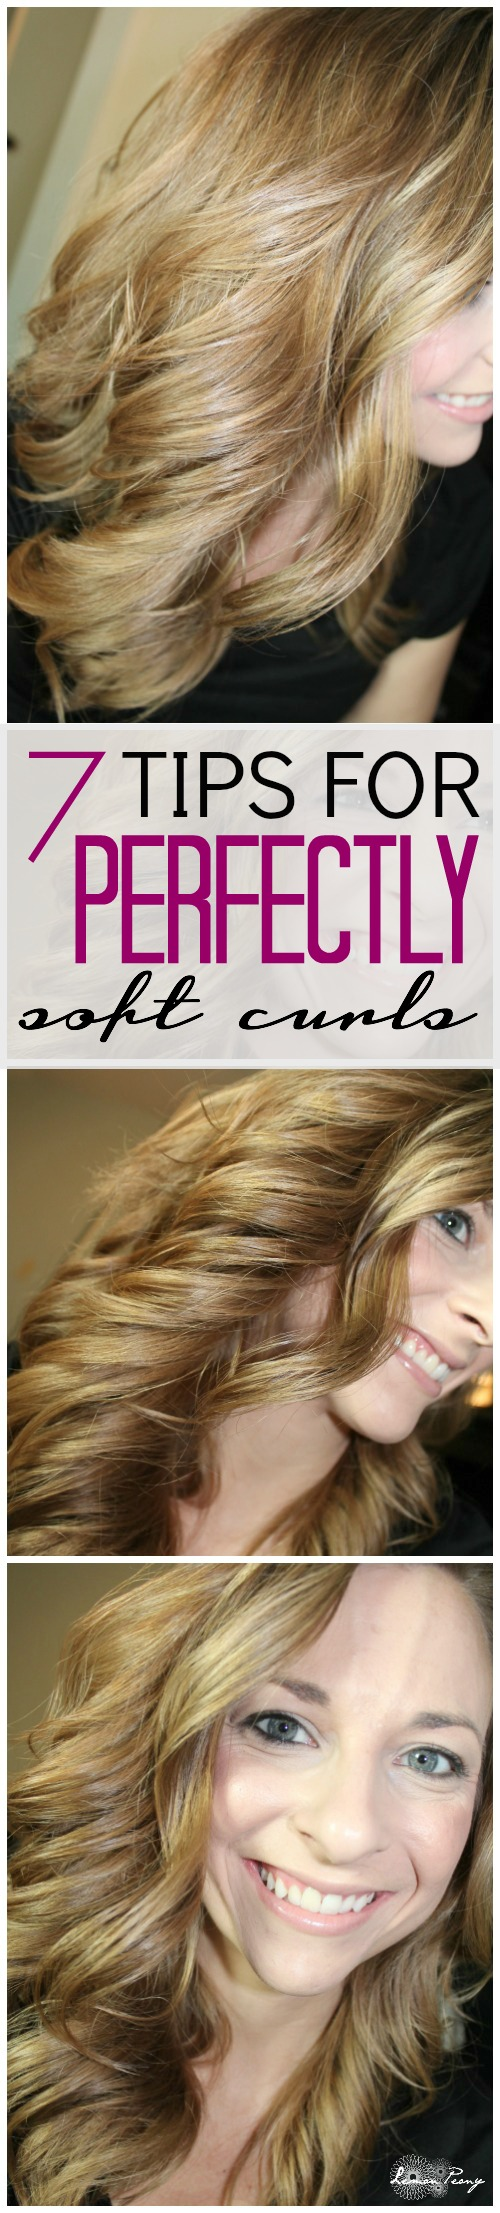 7 Tips for Perfectly Soft Curls